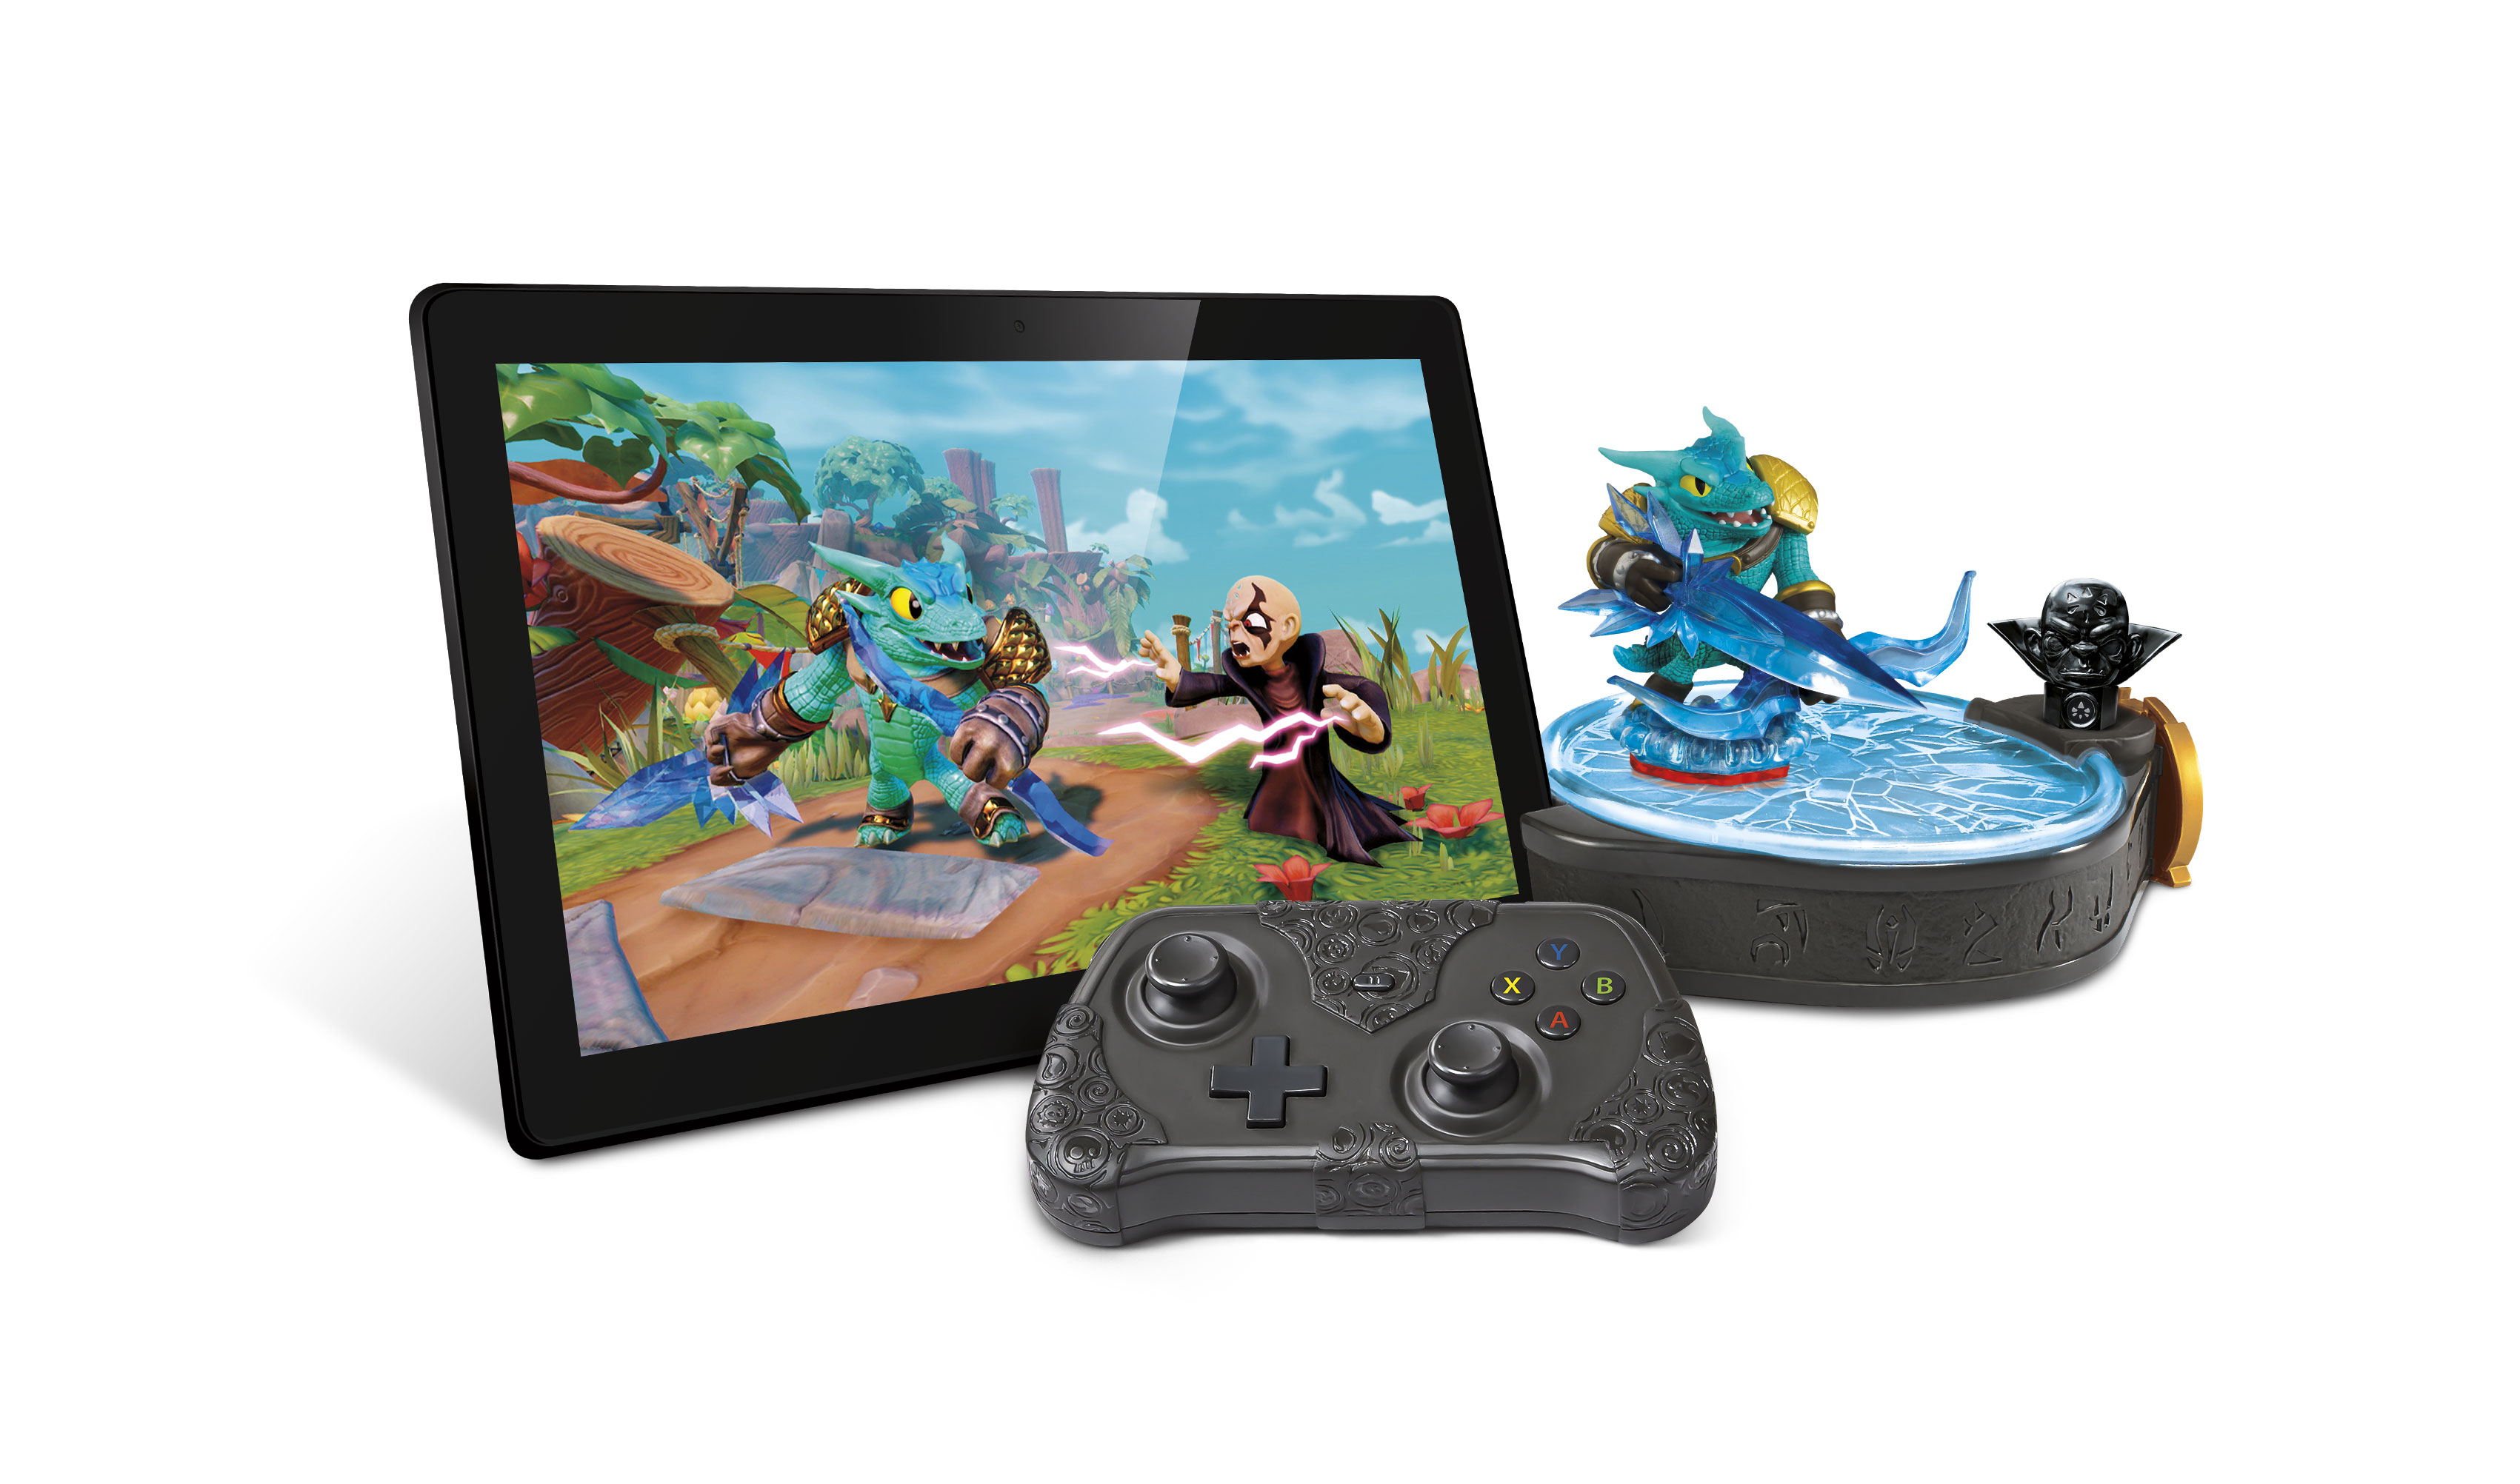 Activision has 'no plans' to sell Skylanders Trap Team controller separately